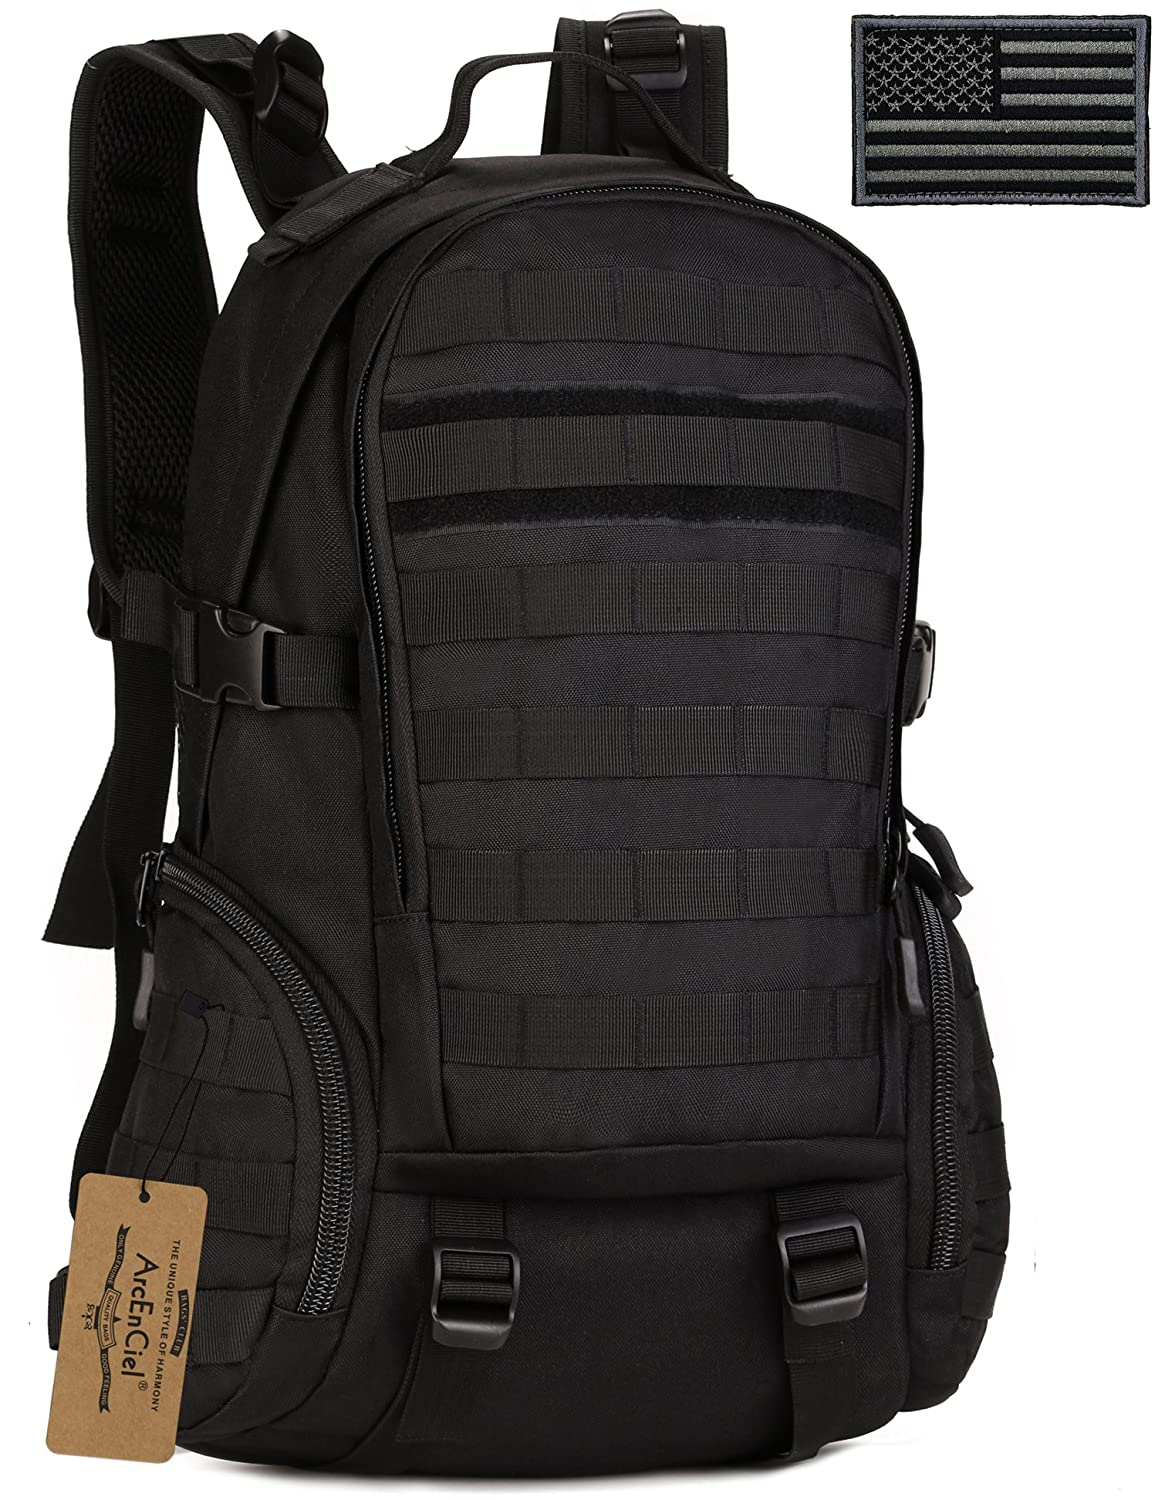 ArcEnCiel Tactical Backpack Military Army Day Assault Pack Molle Bag with Patch - Rain Cover Included